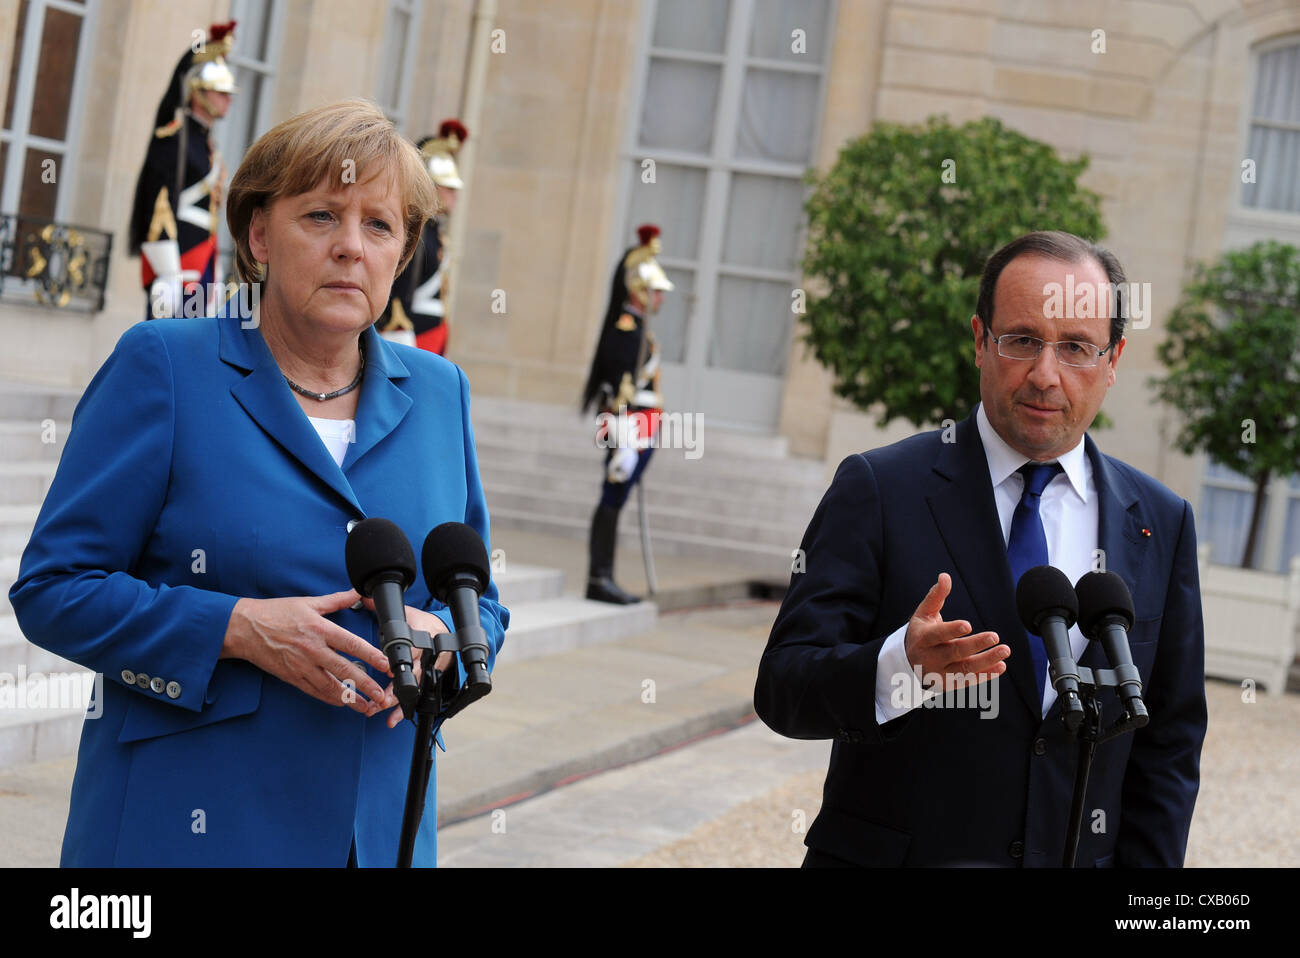 Meeting between French president Francois Hollande and german chancellor Angela Merkel at the Elysee palace in Paris, - Stock Image